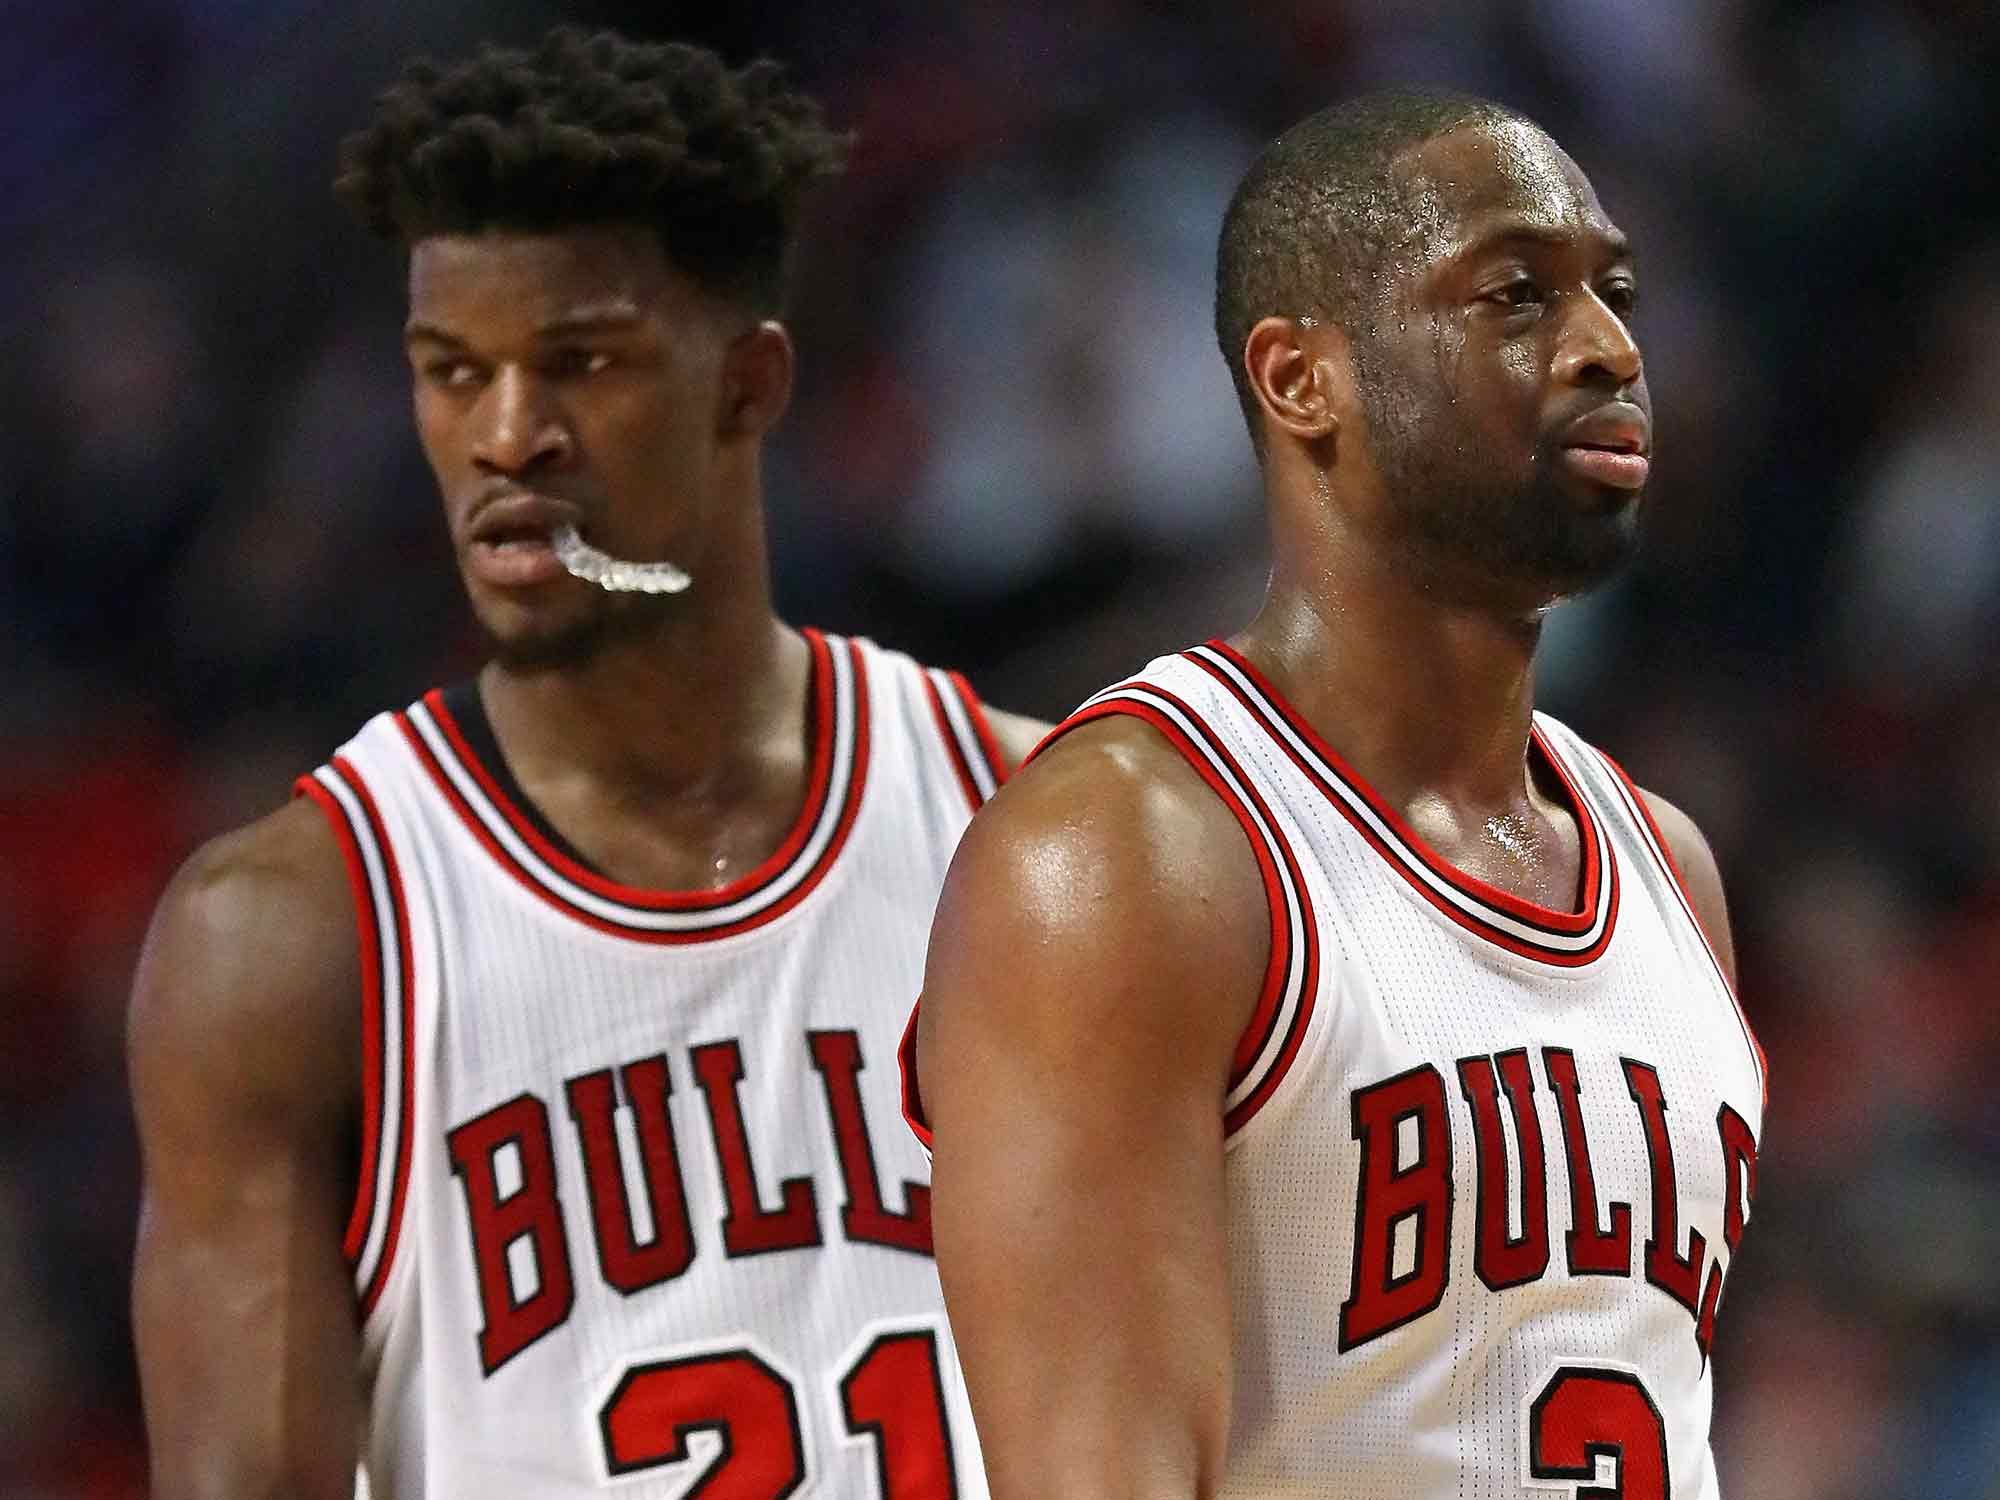 Jimmy Butler and Dwyane Wade